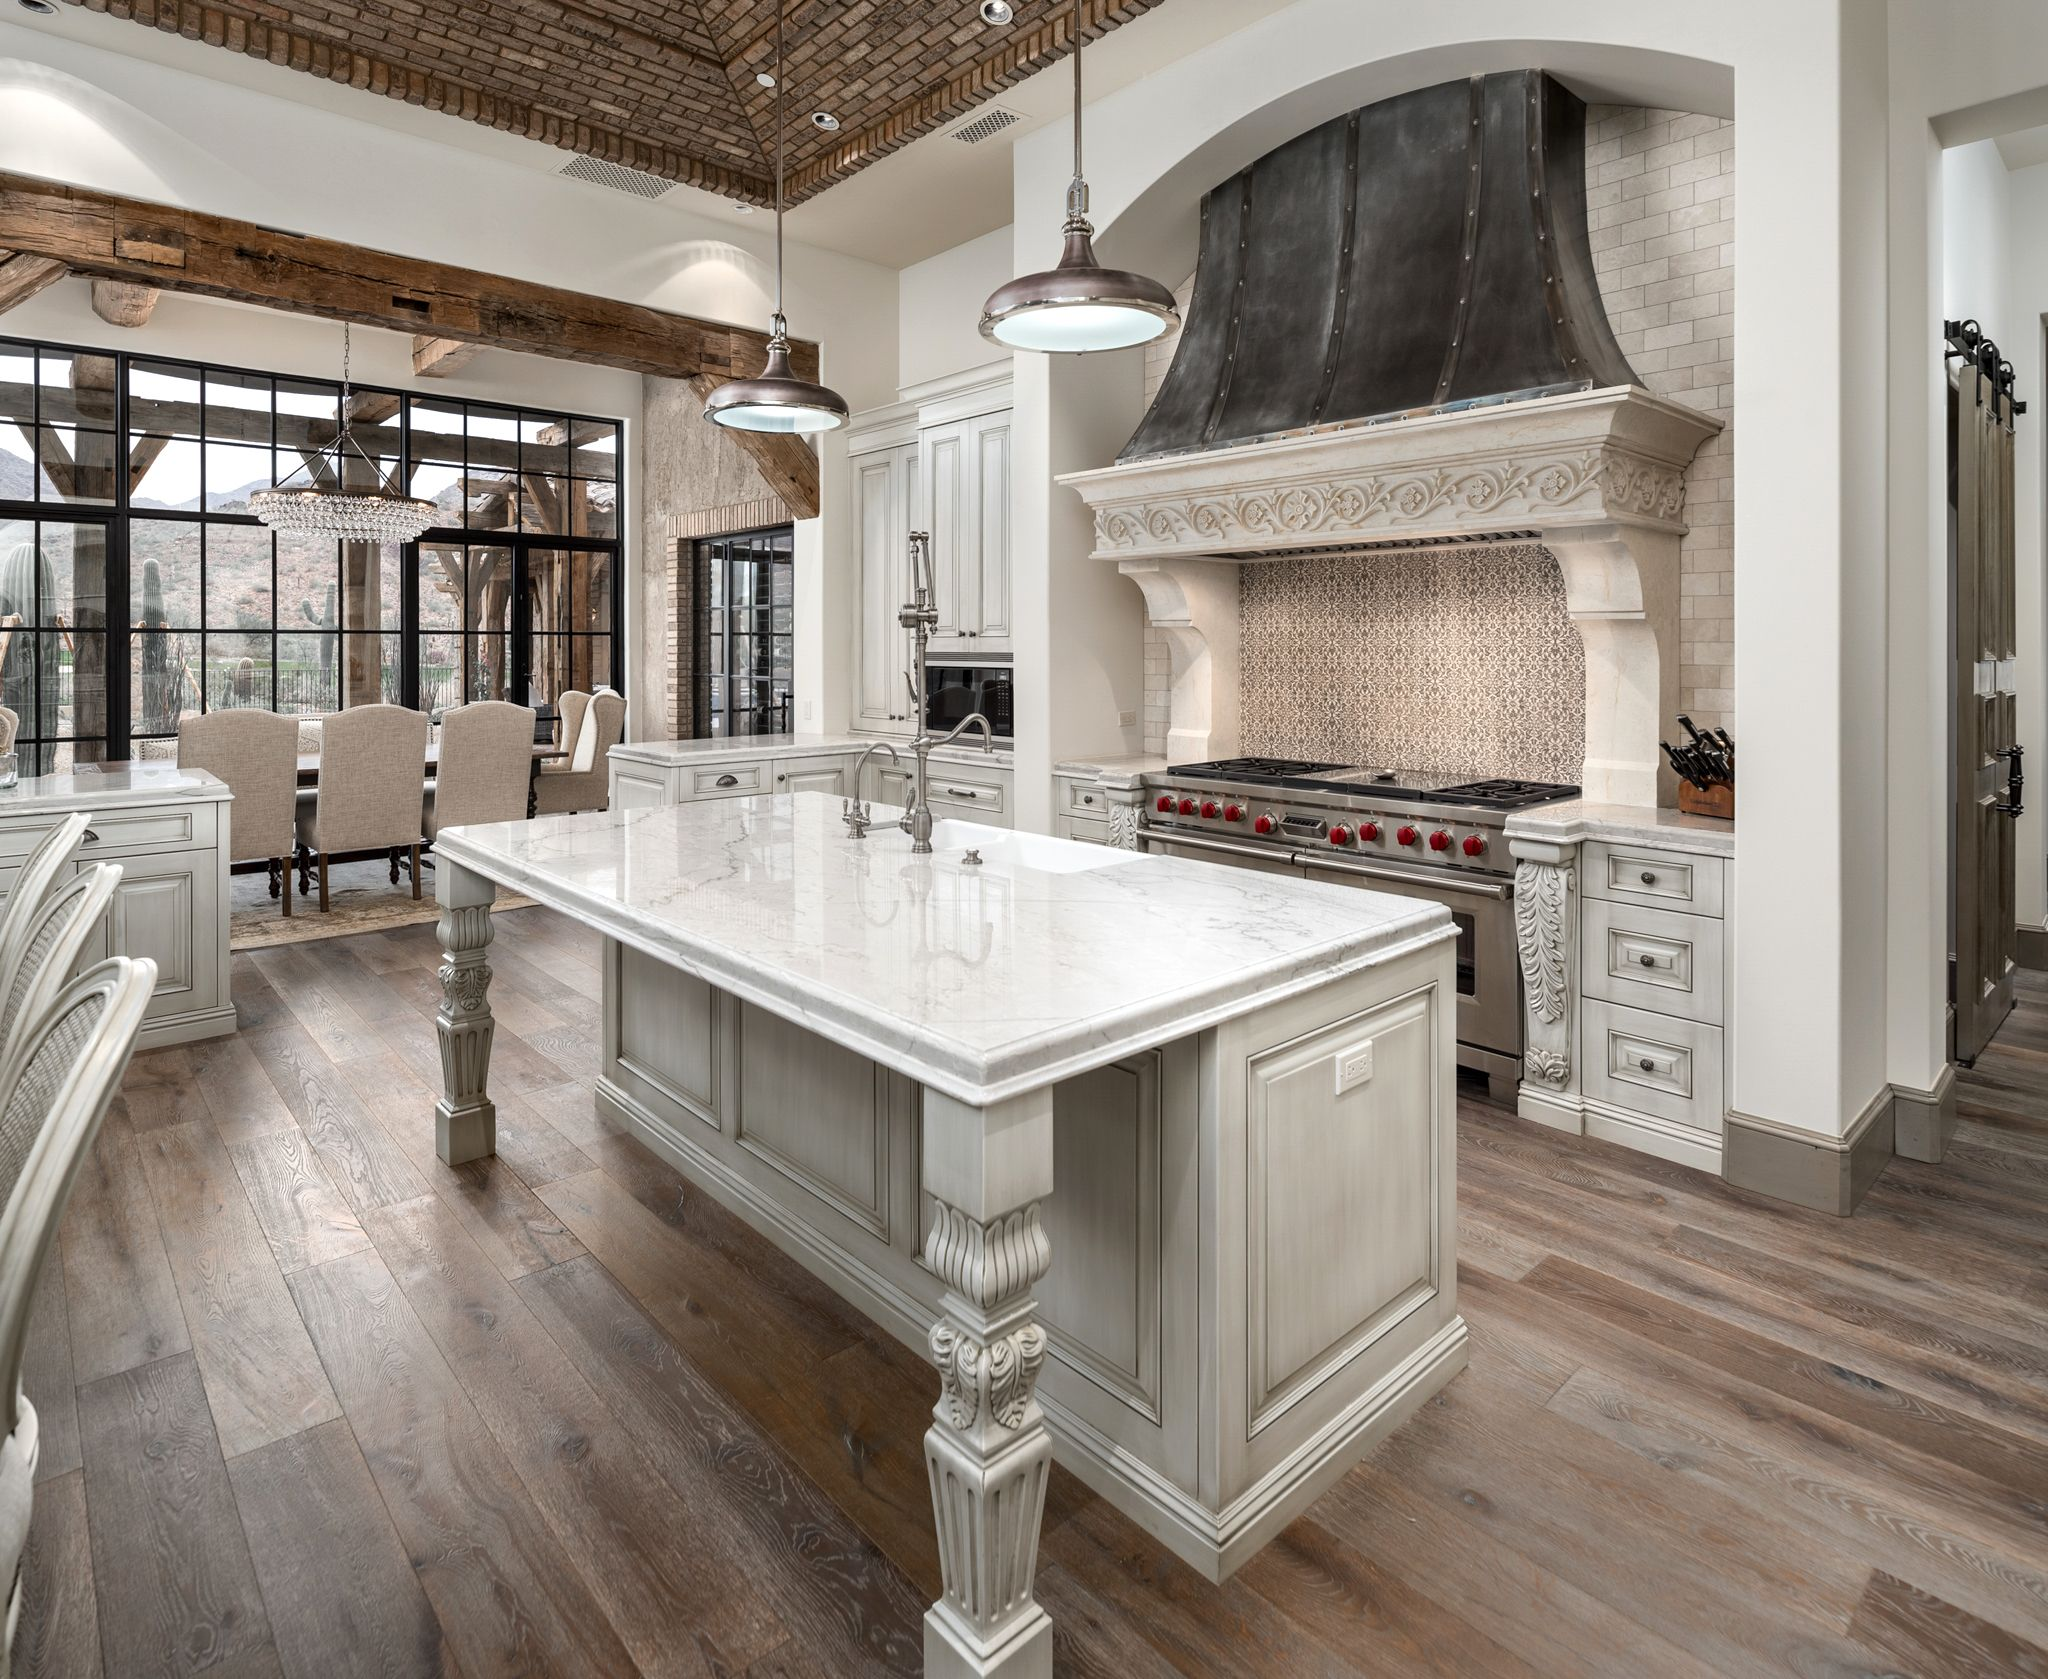 looking for a luxury interior designer let us help you with all your interior design needs 480 on kitchen interior luxury id=11311